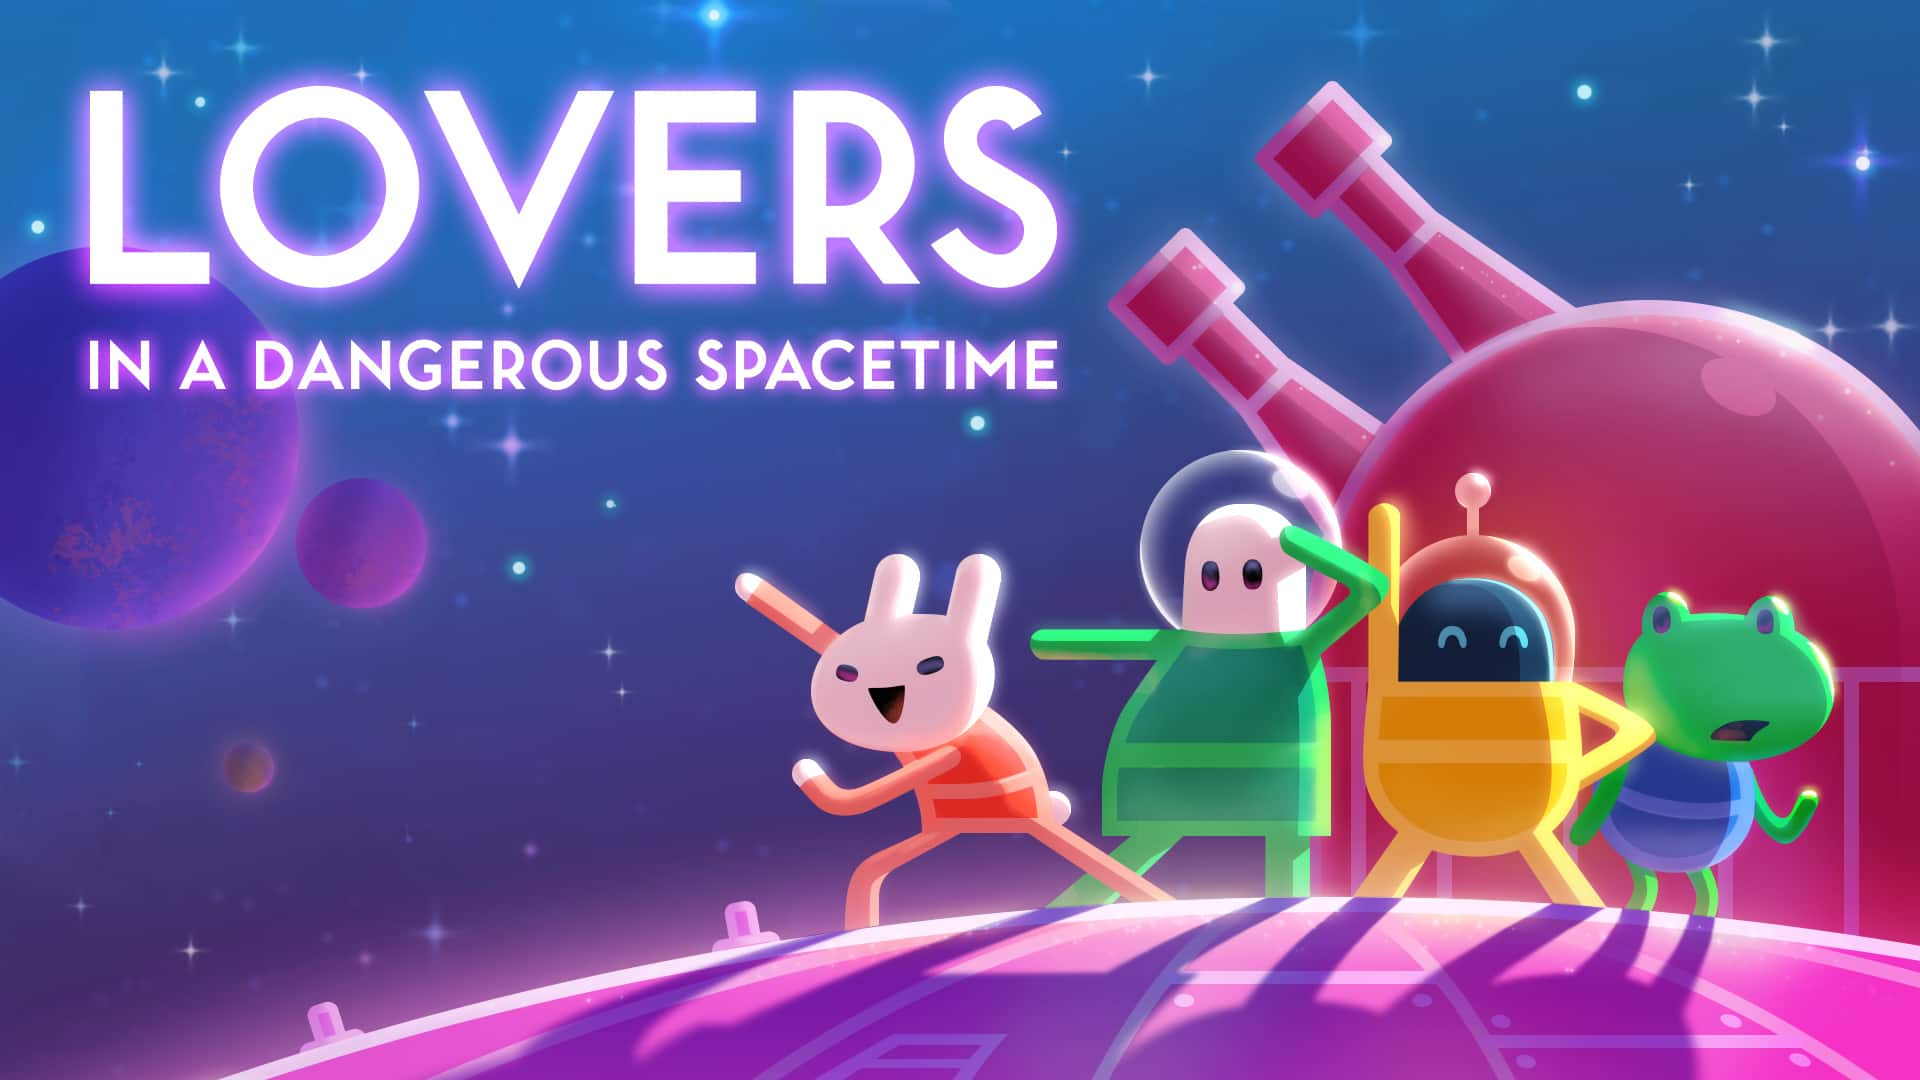 Lovers in a Dangerous Spacetime (Nintendo Switch Digital Download) - $7.49 @ Nintendo eShop